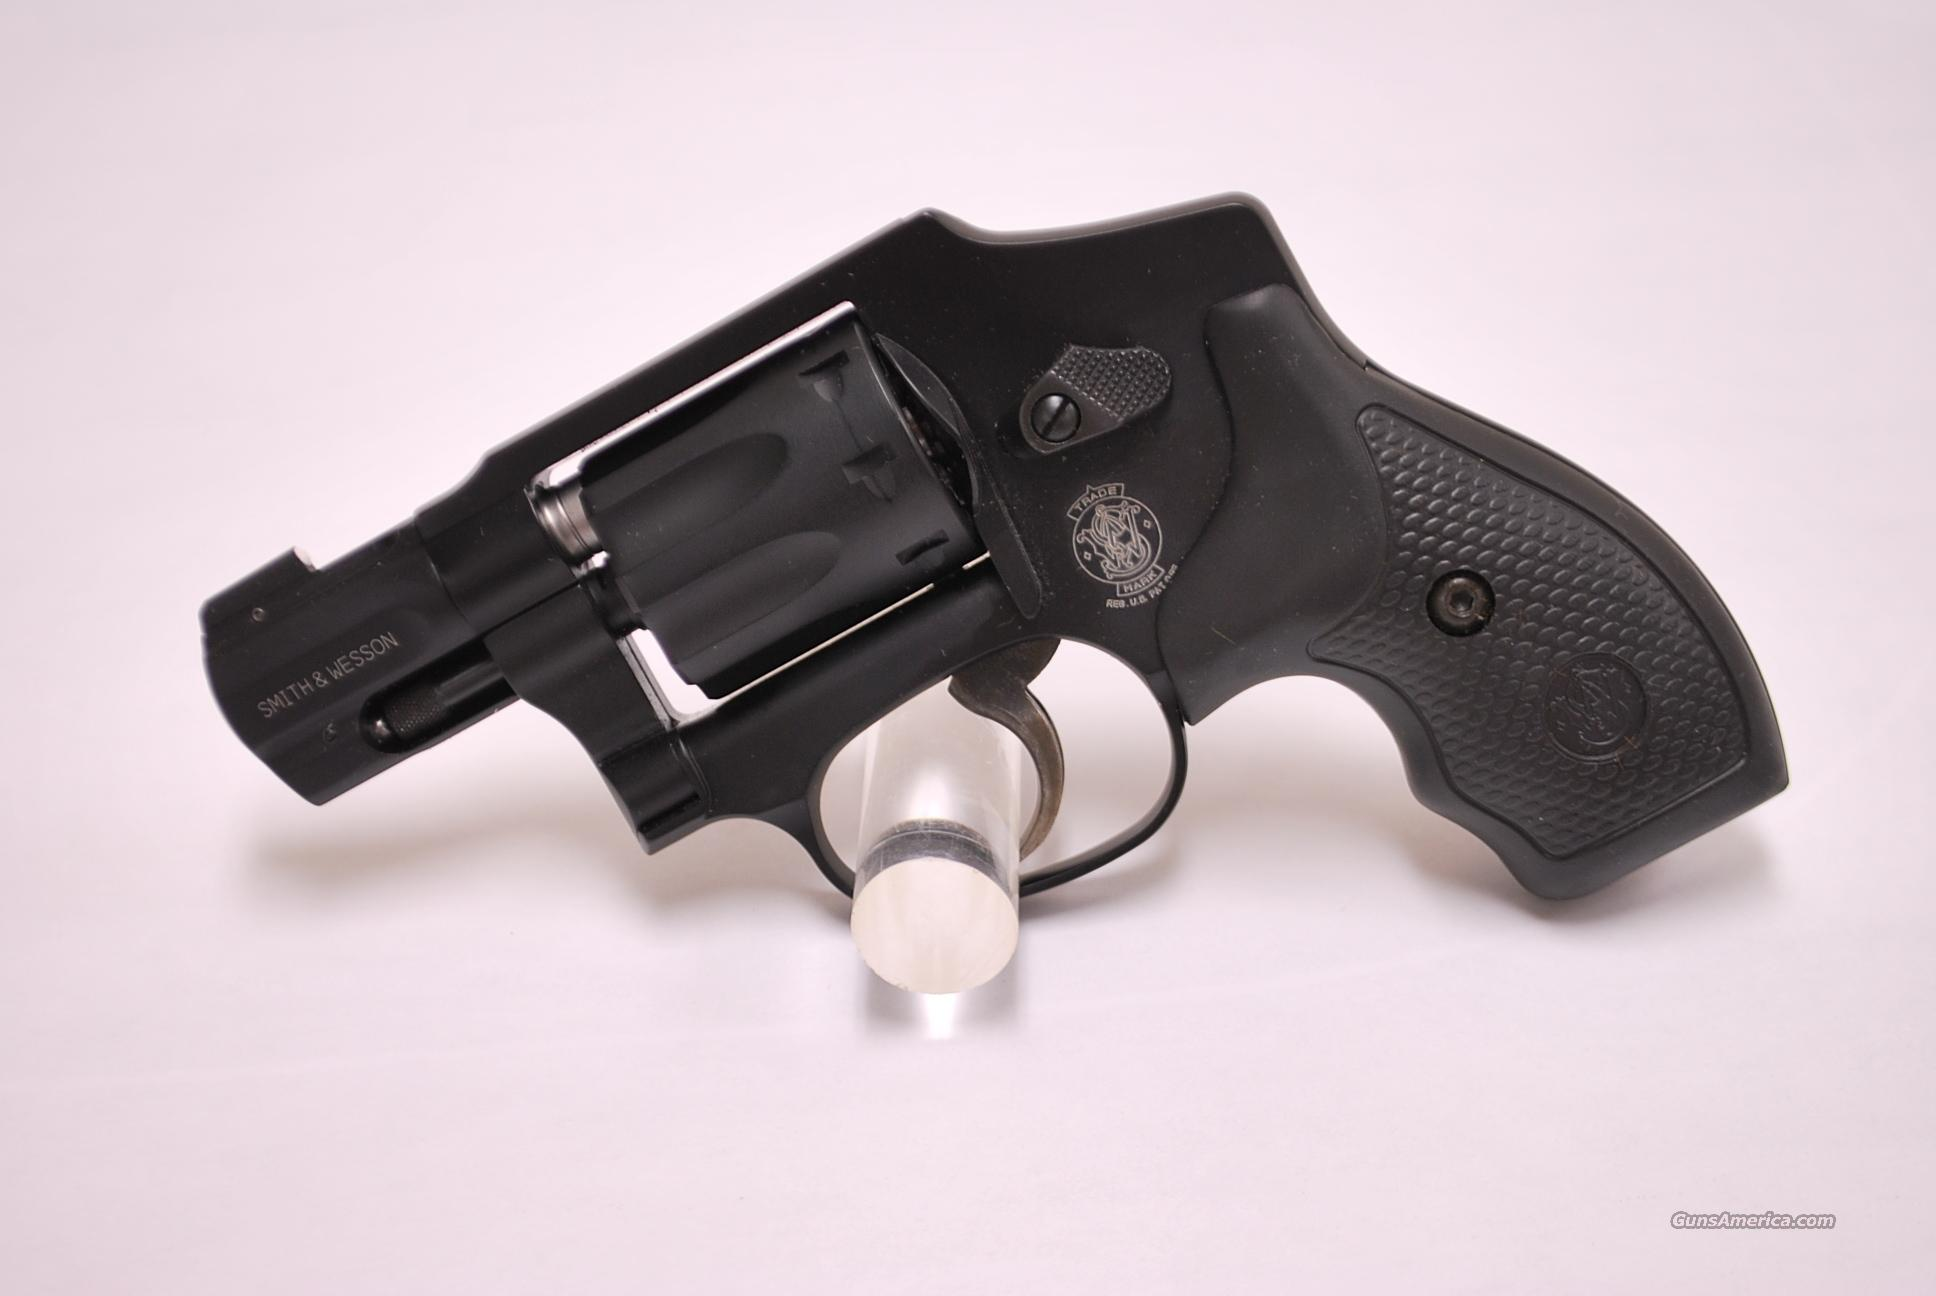 Smith & Wesson 43C Airlite 22 lr NEW SW S&W  Guns > Pistols > Smith & Wesson Revolvers > Pocket Pistols